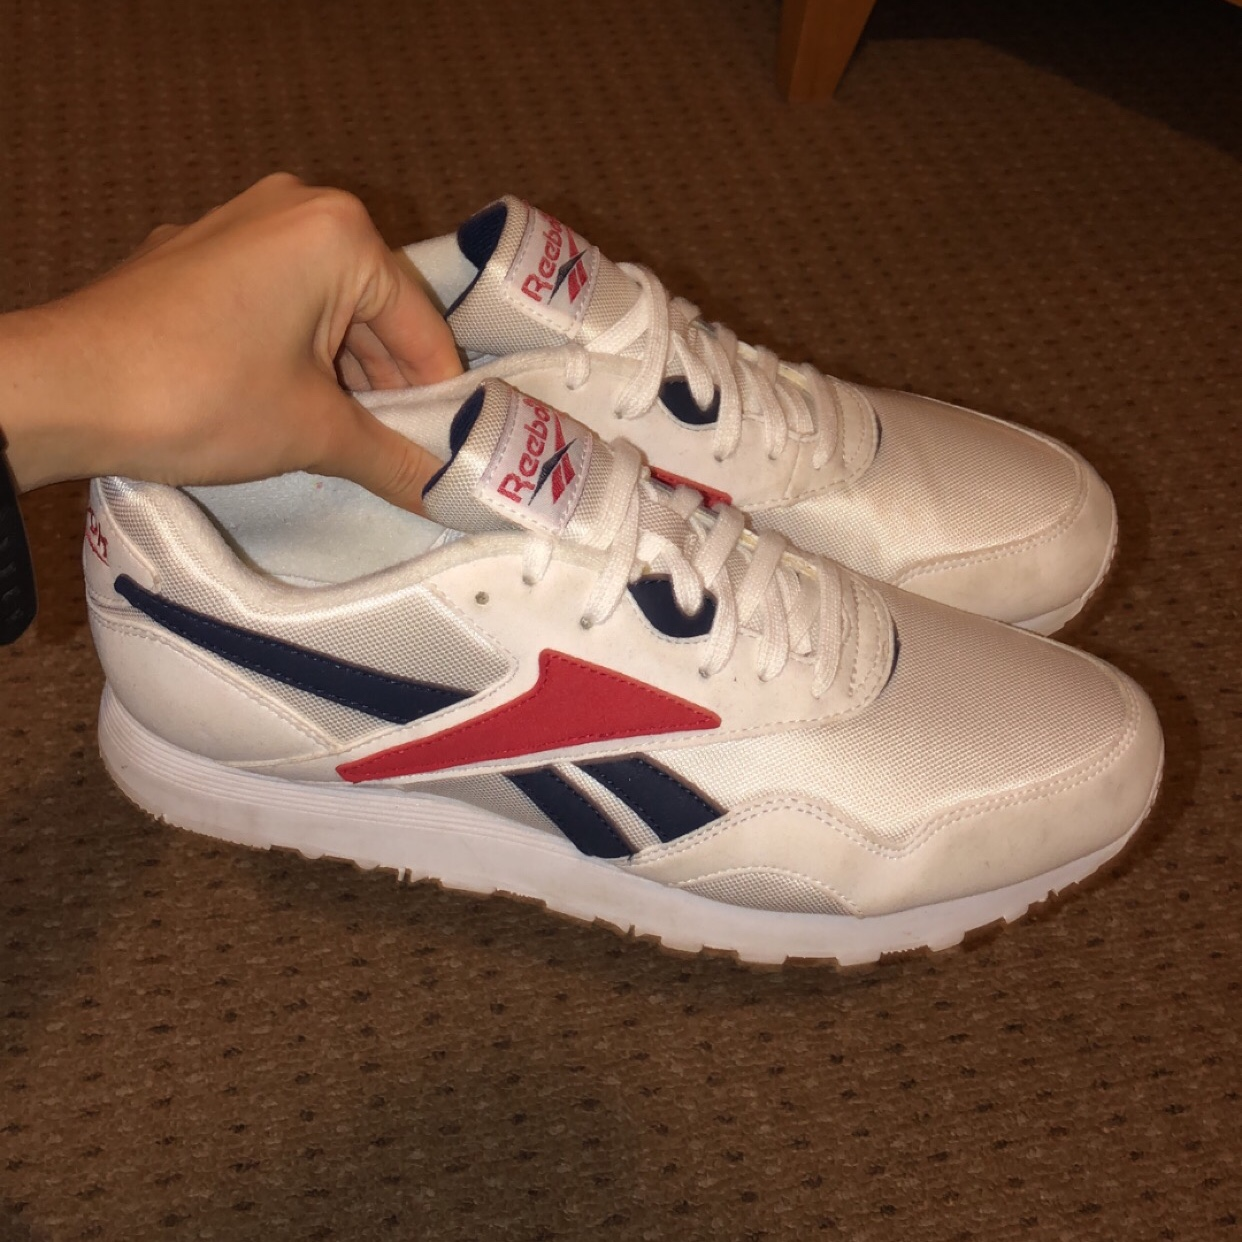 Reebok rapide OG classic trainers in white red Depop